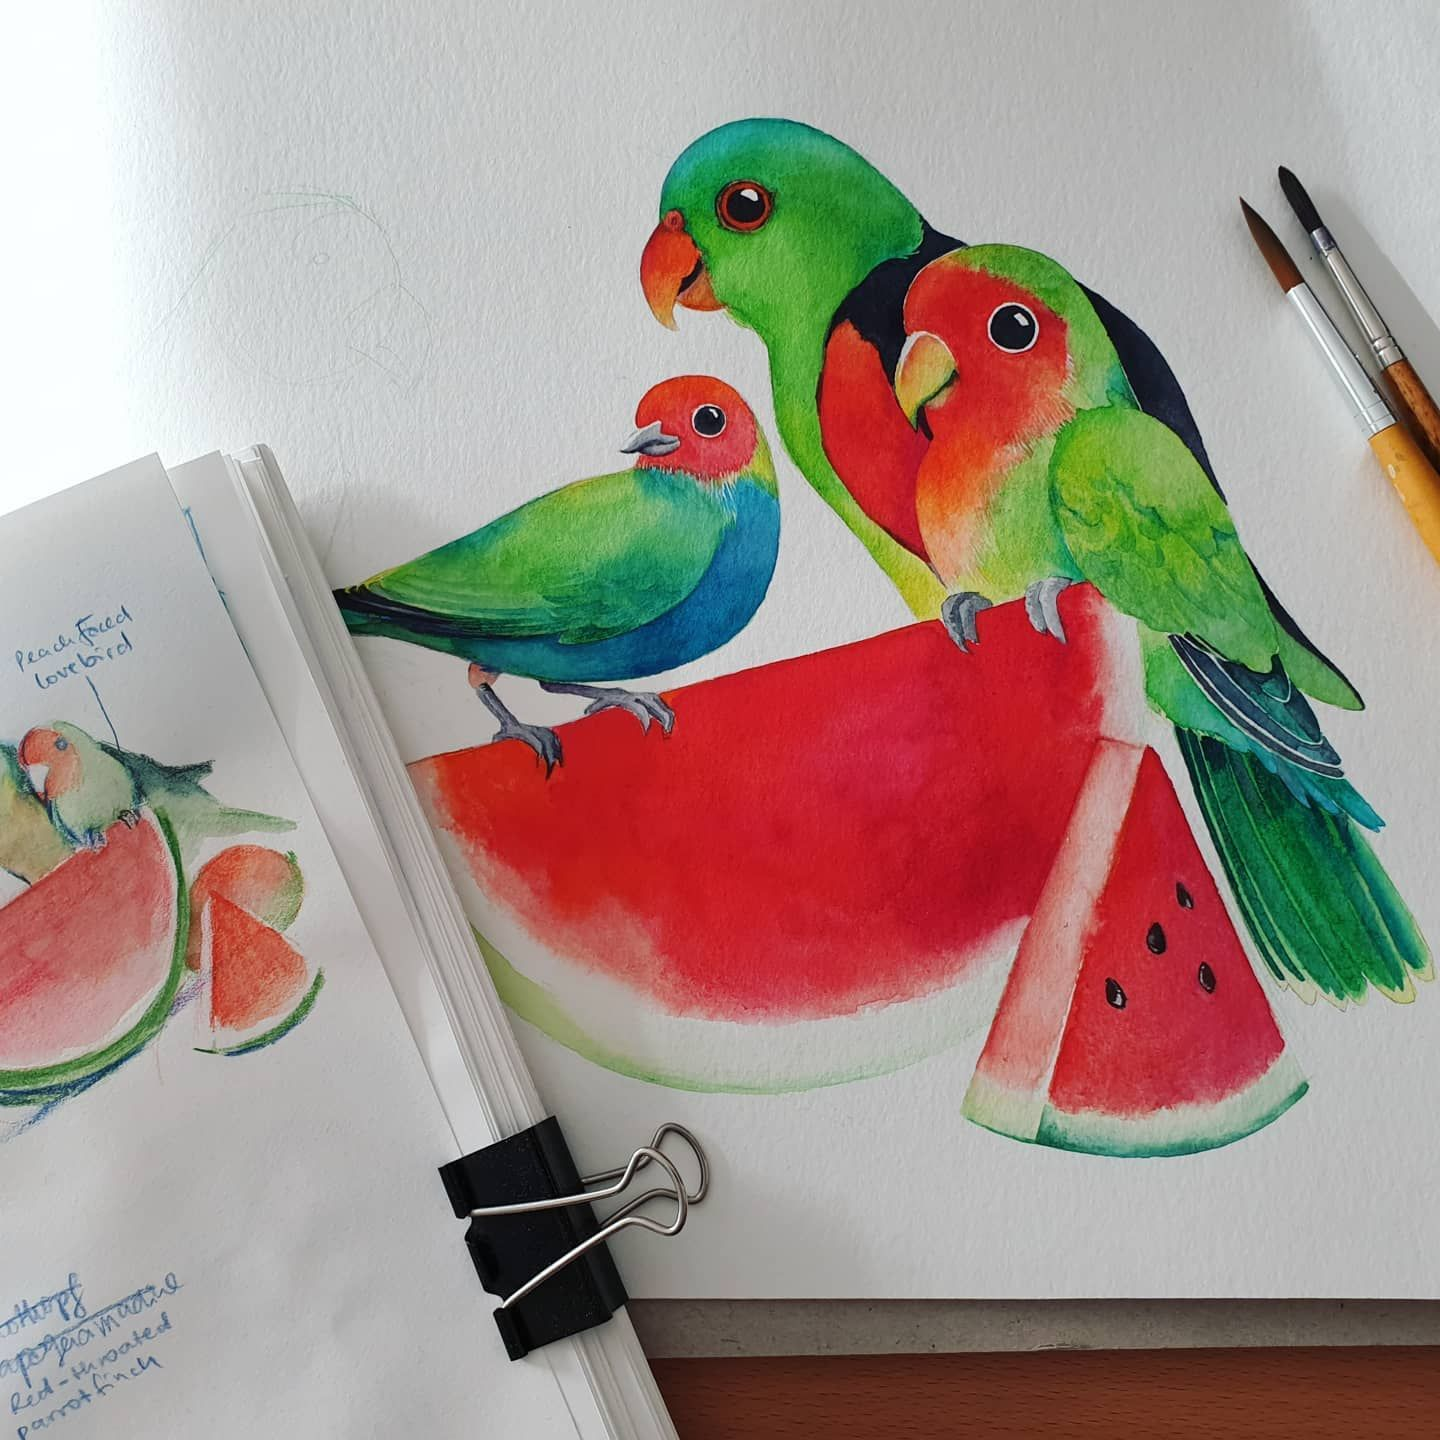 Sketch vs. Half finished illustration :) These are a red winged parrot peach faced lovebird and bay-headed tanager. . . . #bird #birdsofinstagram #animals #animalillustration #animalillustrations #redandgreen #greenred #summervibes #watercolor #watercolorillustrations #watercolourpaintings #watercolorillustration #illustrations #illustratorsoninstagram #illustration #illustrationmadeingermany #illustrator #watercolourillustration #watercolors #hahnemühle #boesner #davincibrush #redwingedparrot #